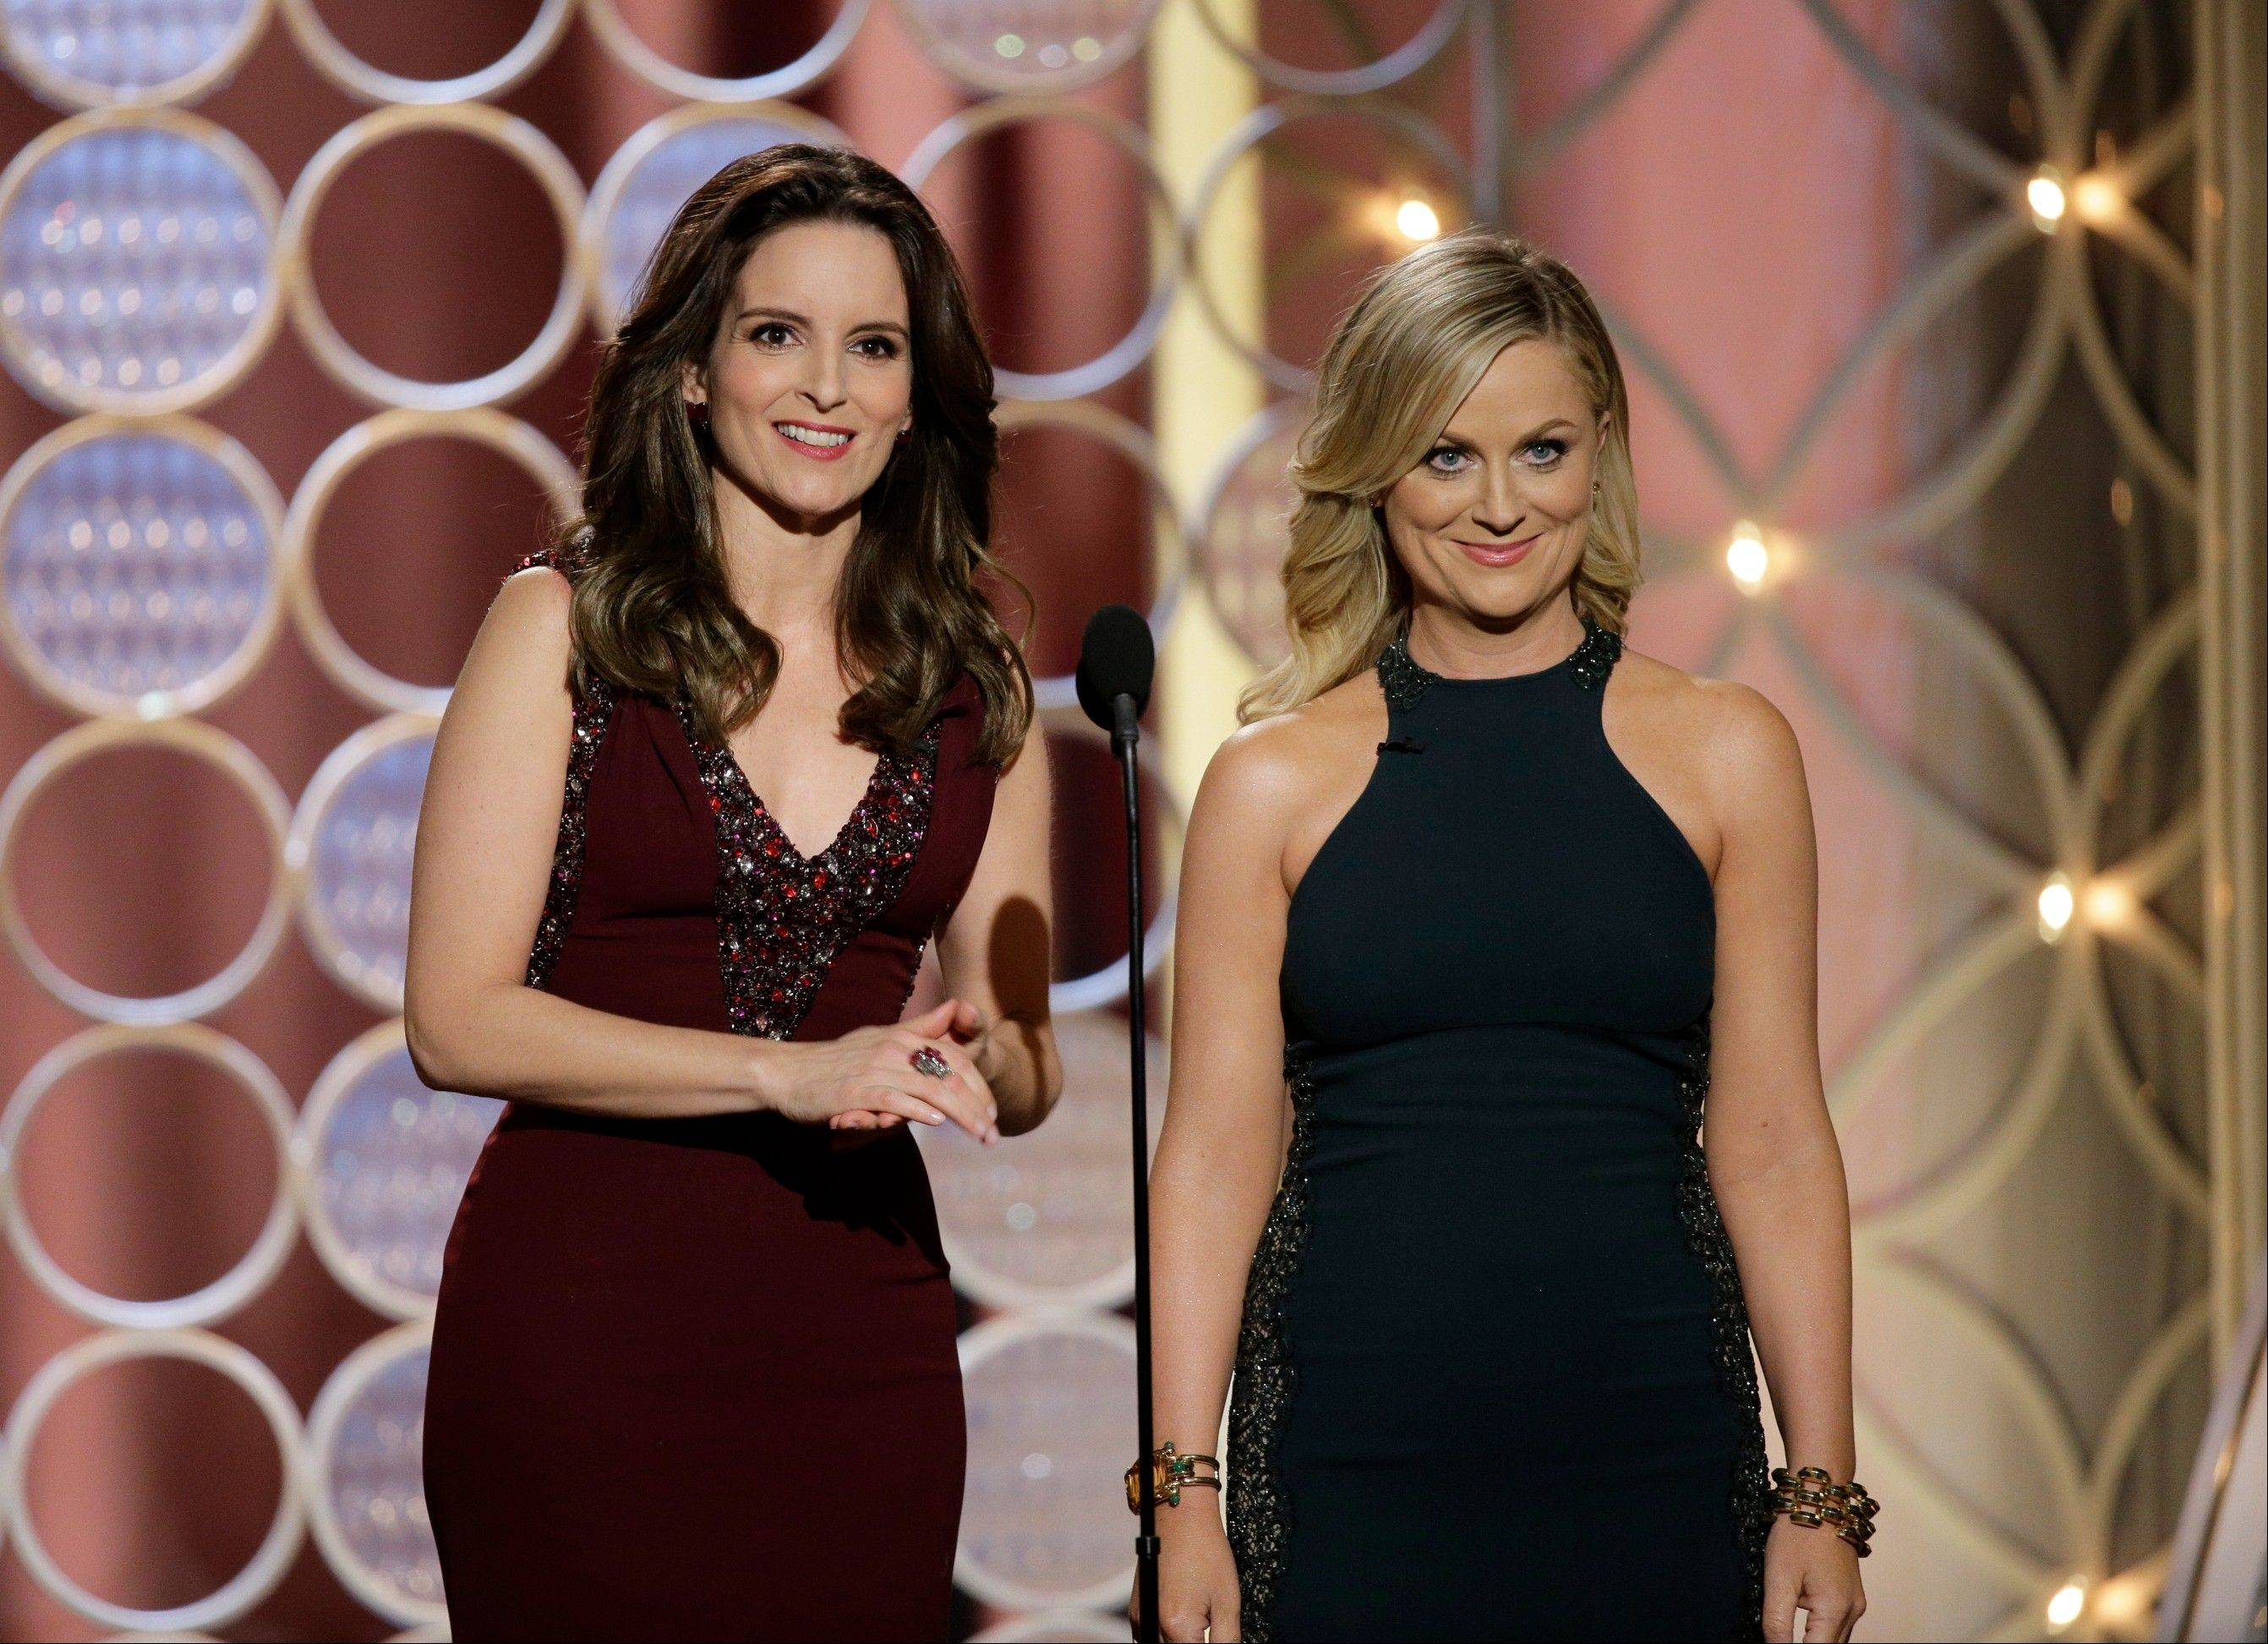 Tina Fey, left, and Amy Poehler brought the funny to the 71st annual Golden Globe Awards as they again shared hosting duties.